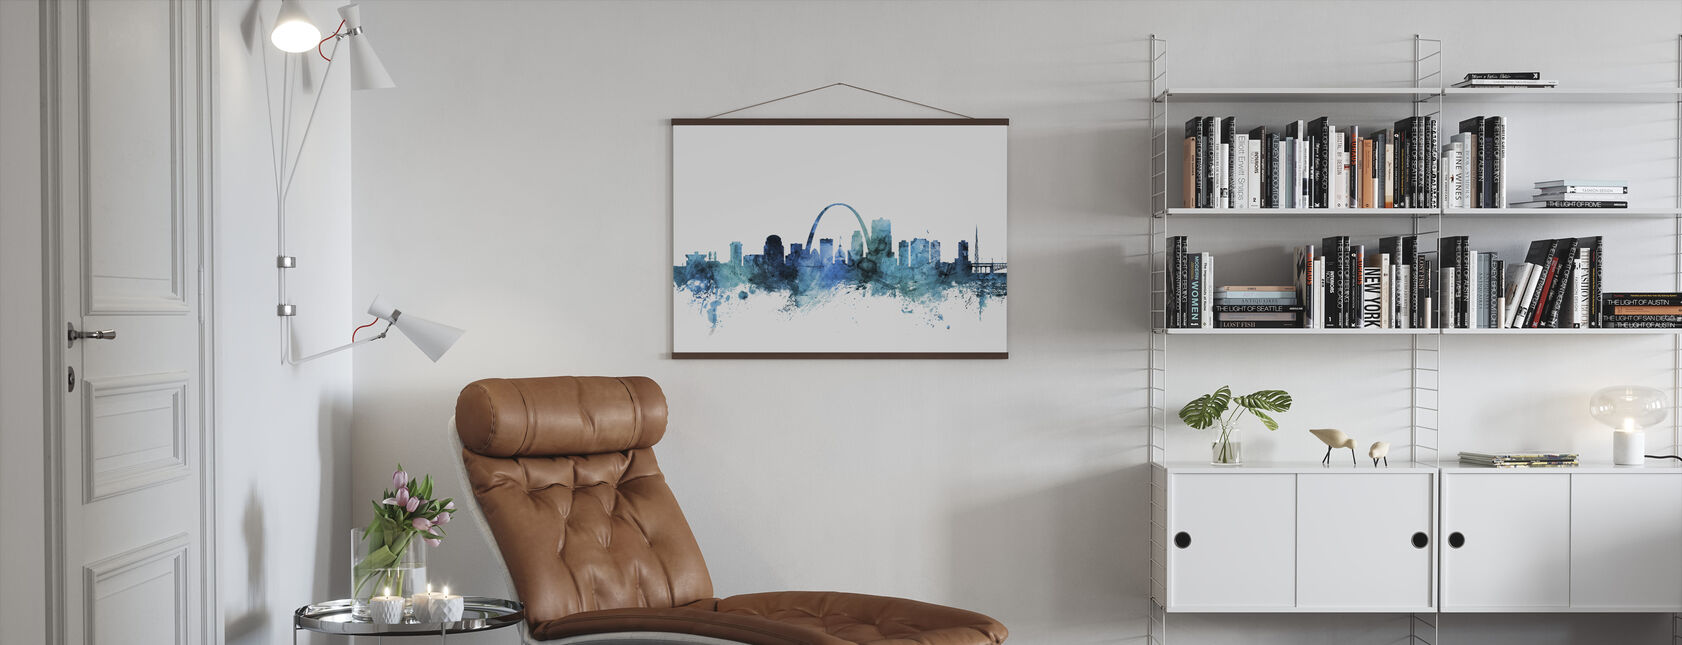 St Louis Missouri Skyline - Poster - Living Room